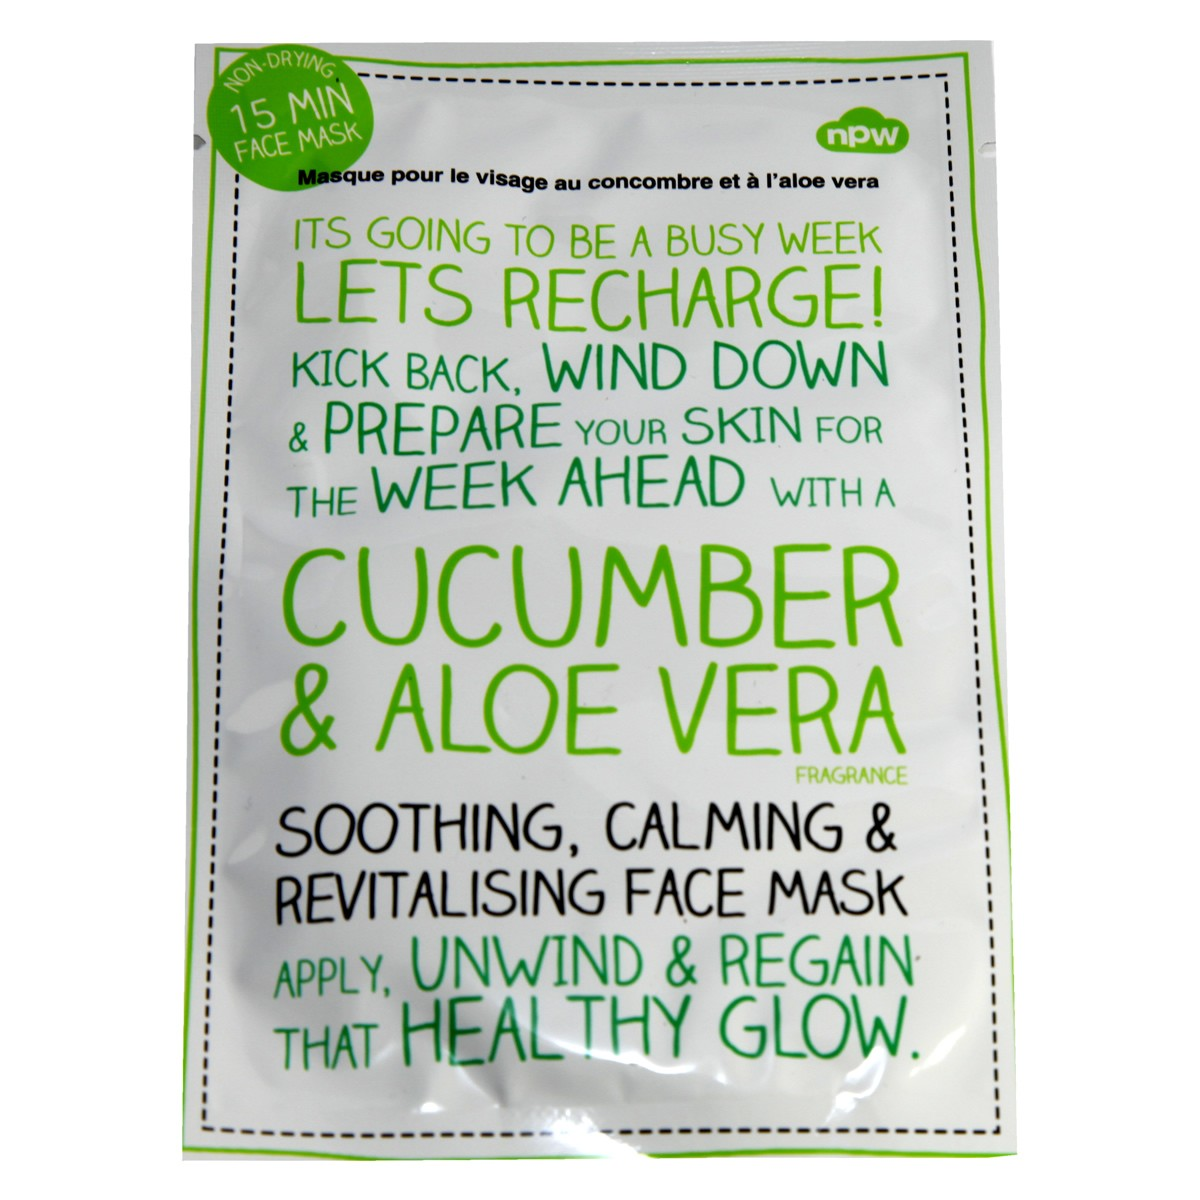 NPW Soothing, Calming & Revitalising Face Mask with Cucumber & Aloe Vera